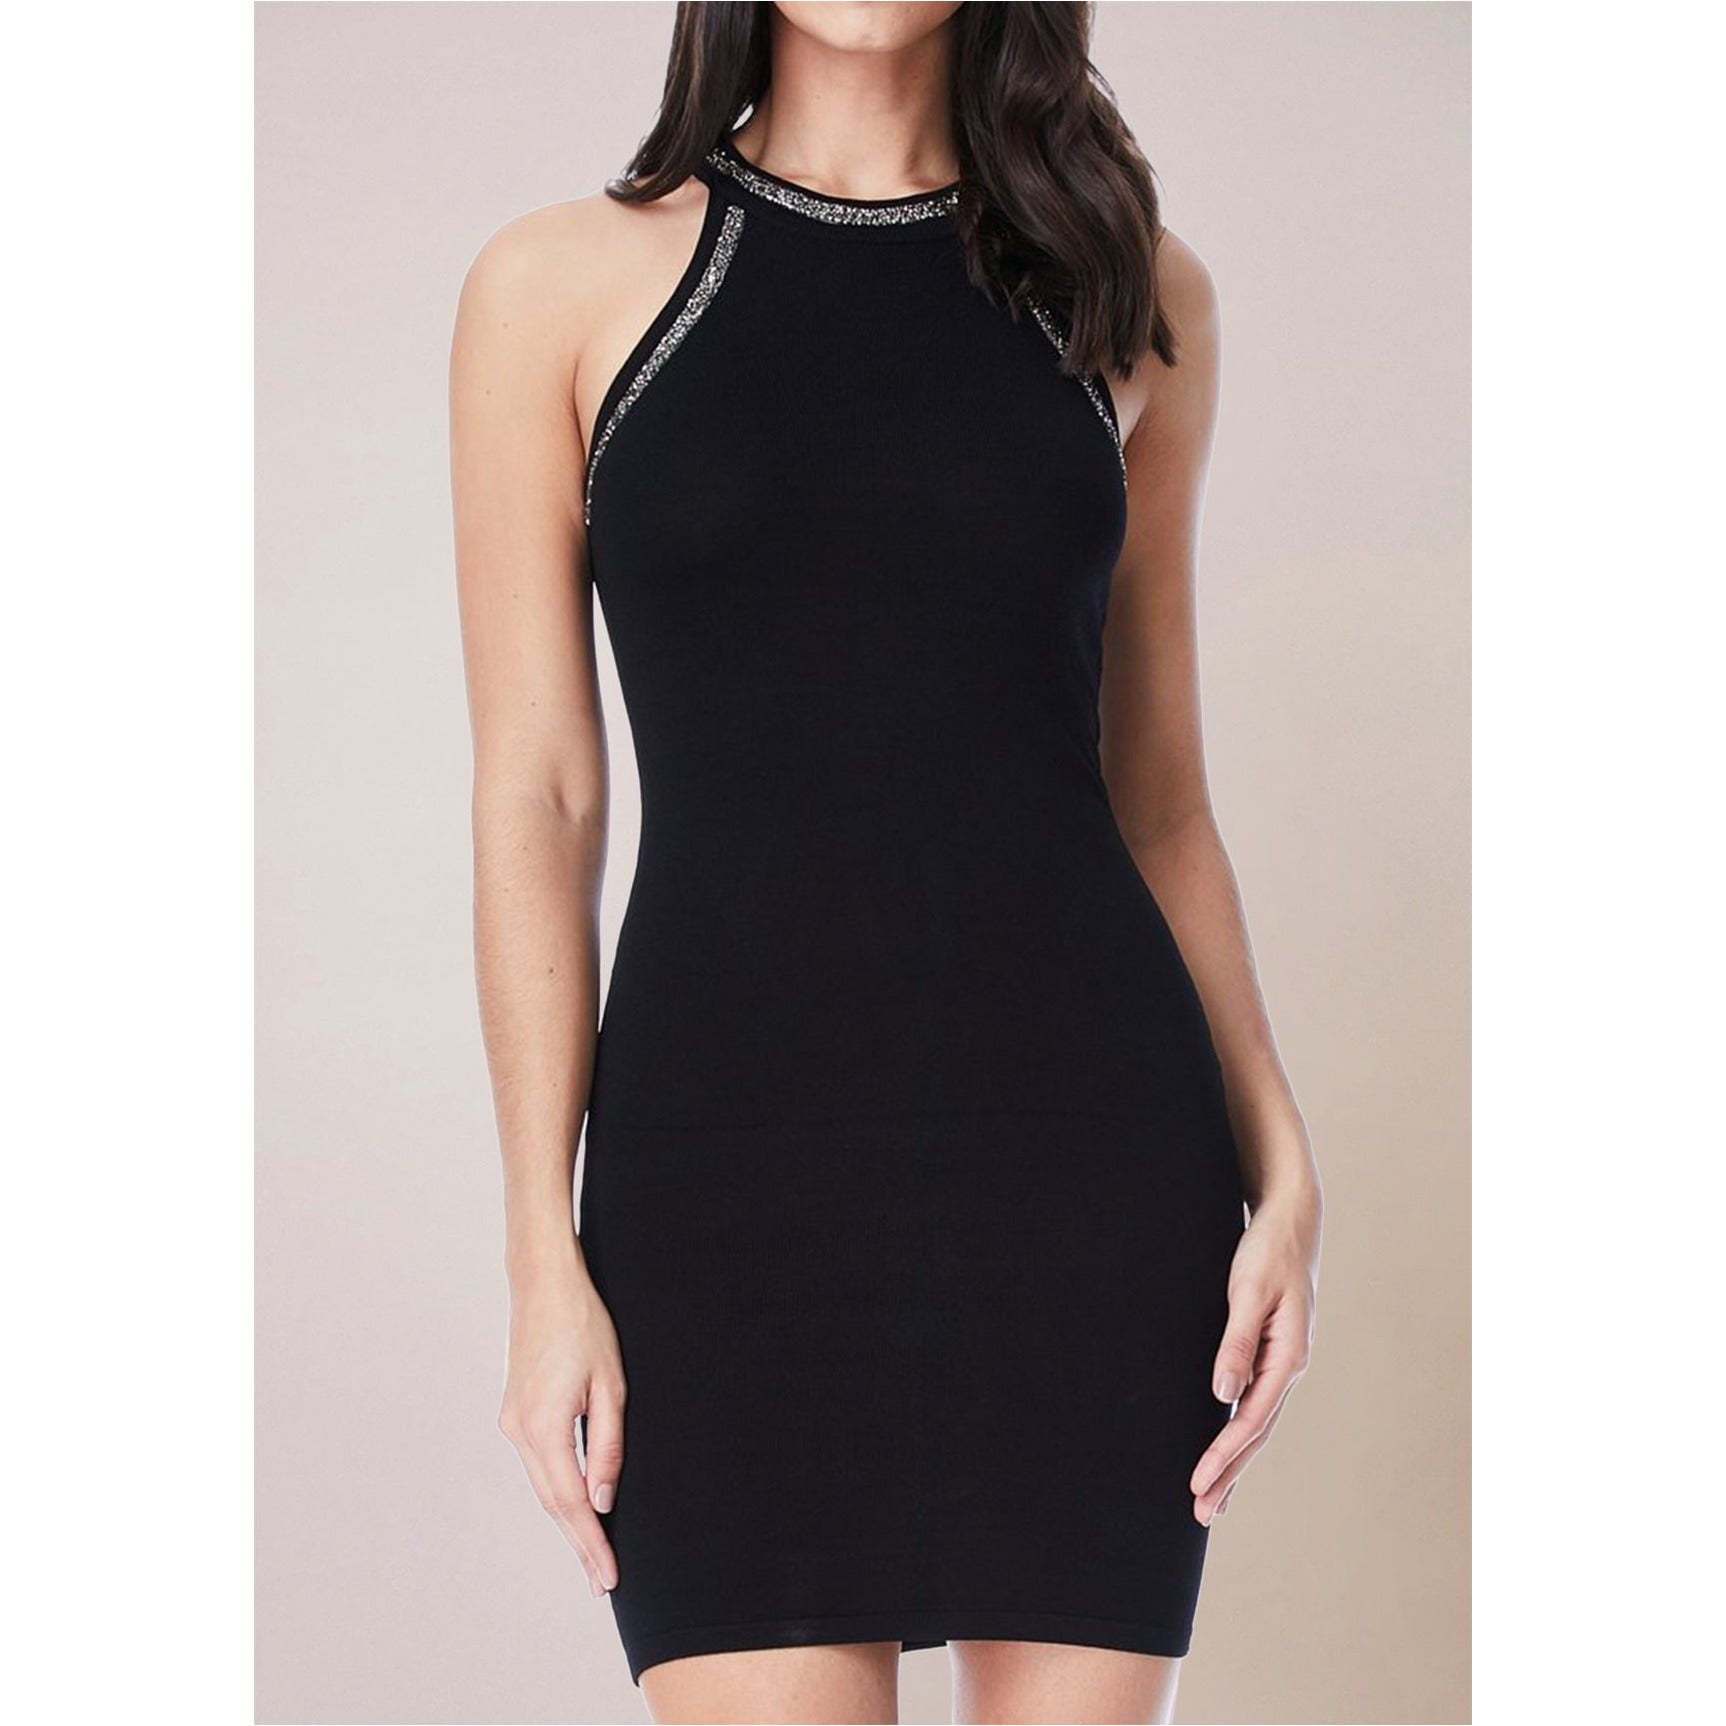 BLACK  BODYCON DRESS WITH LACE UP DETAILS